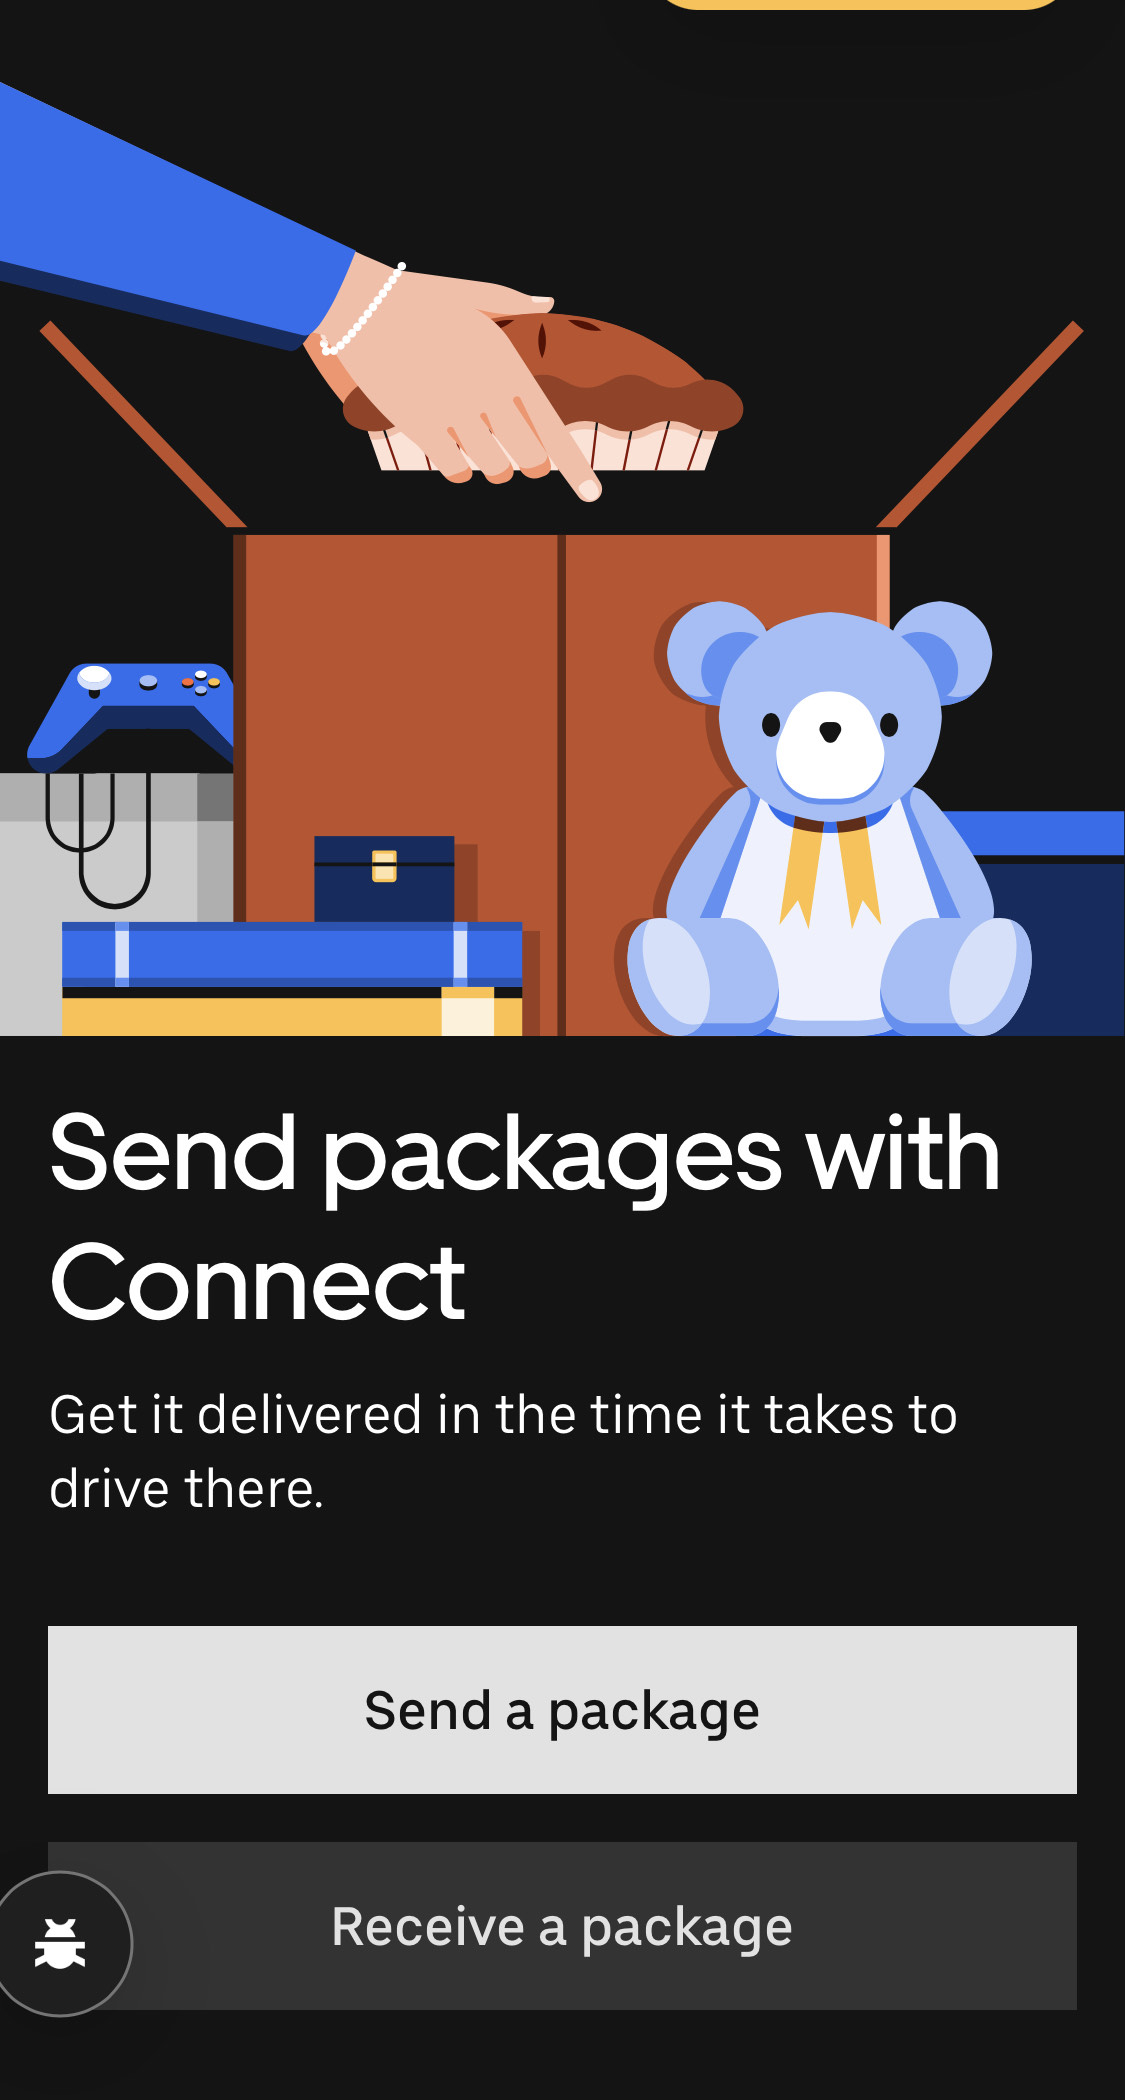 IMG 1025 - Uber Connect provides ease and new earning opportunities